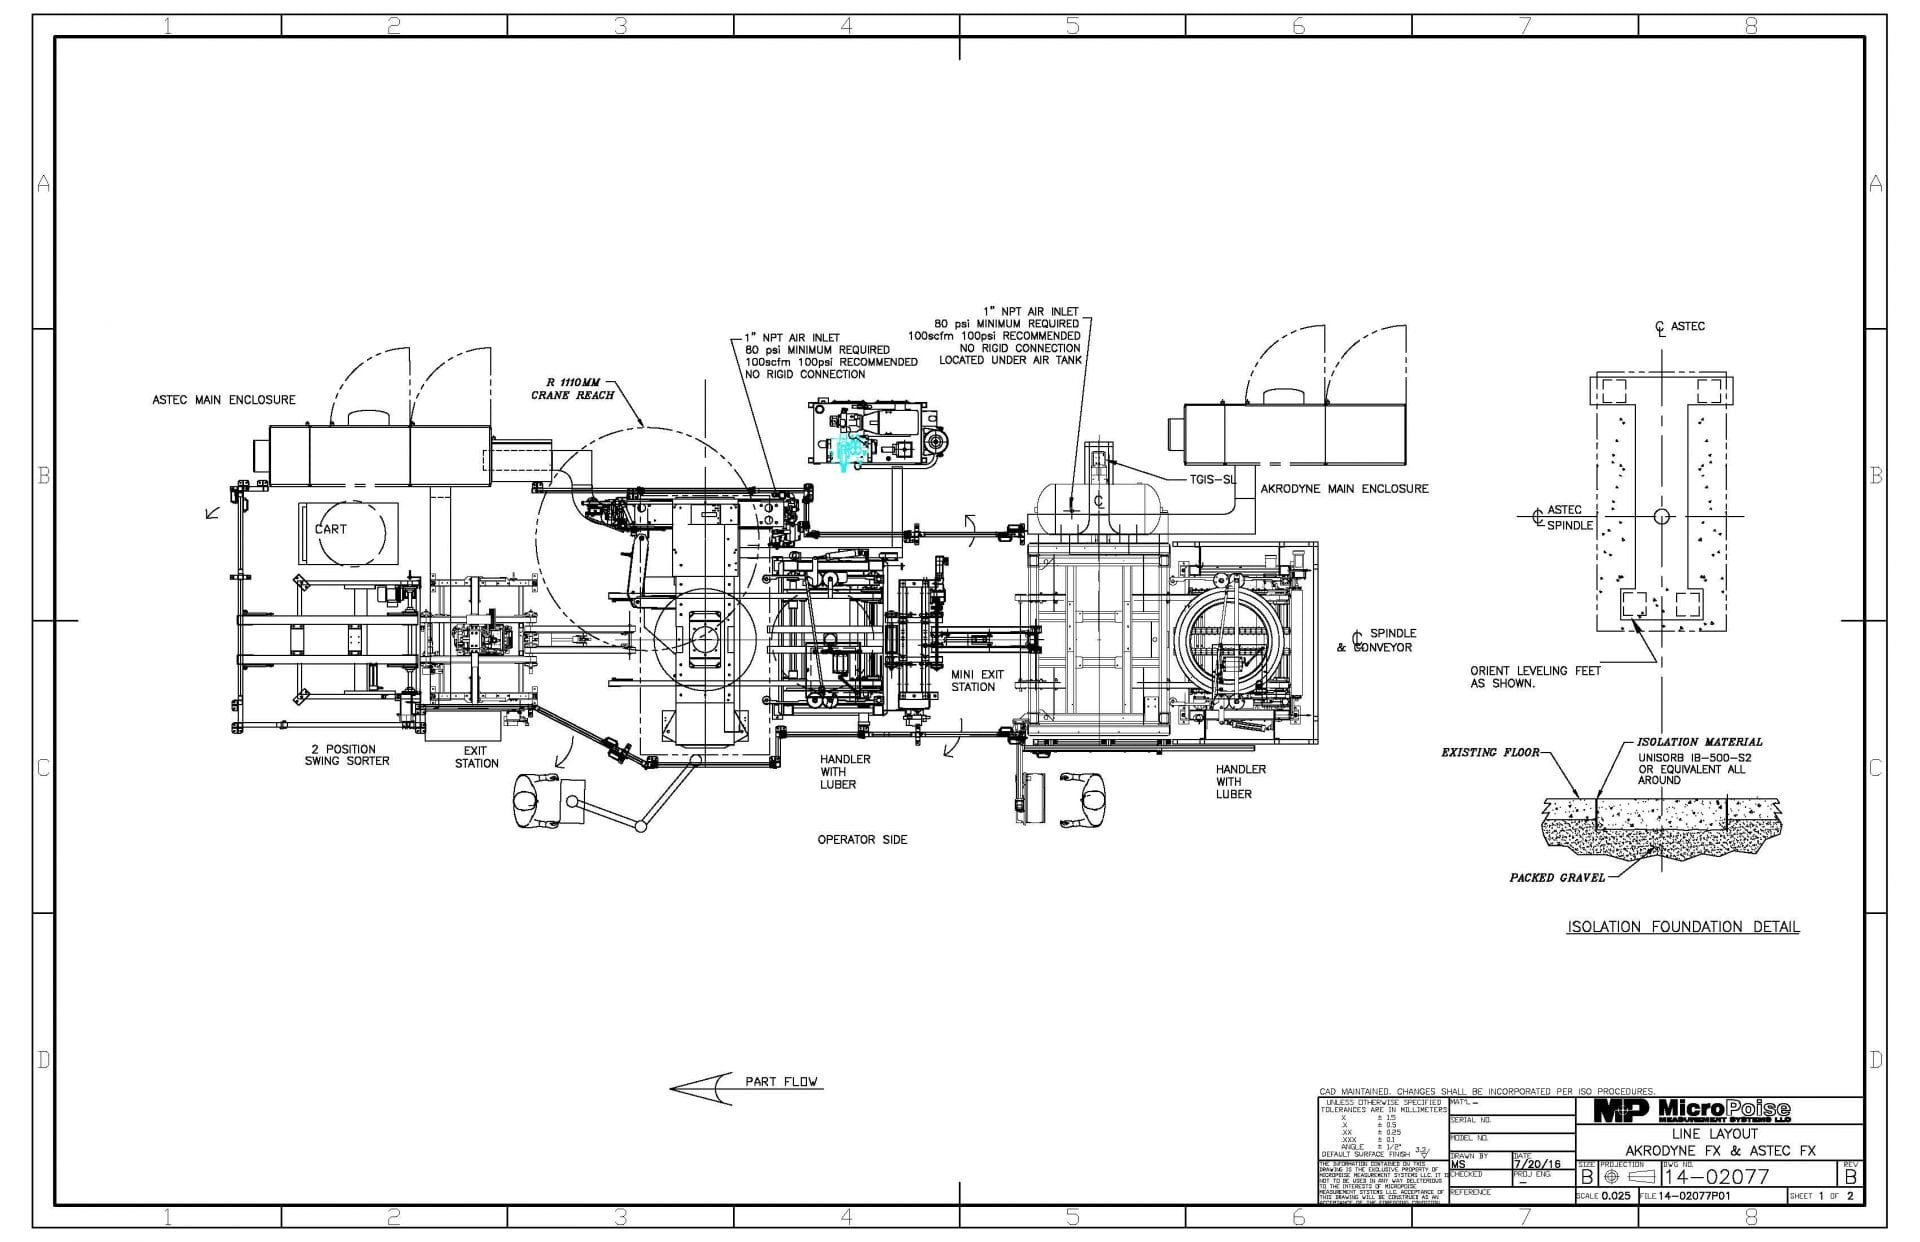 AkroDYNE FX ASTEC FX Line Layout_2 e1476893214776 1998 cadillac deville engine diagram